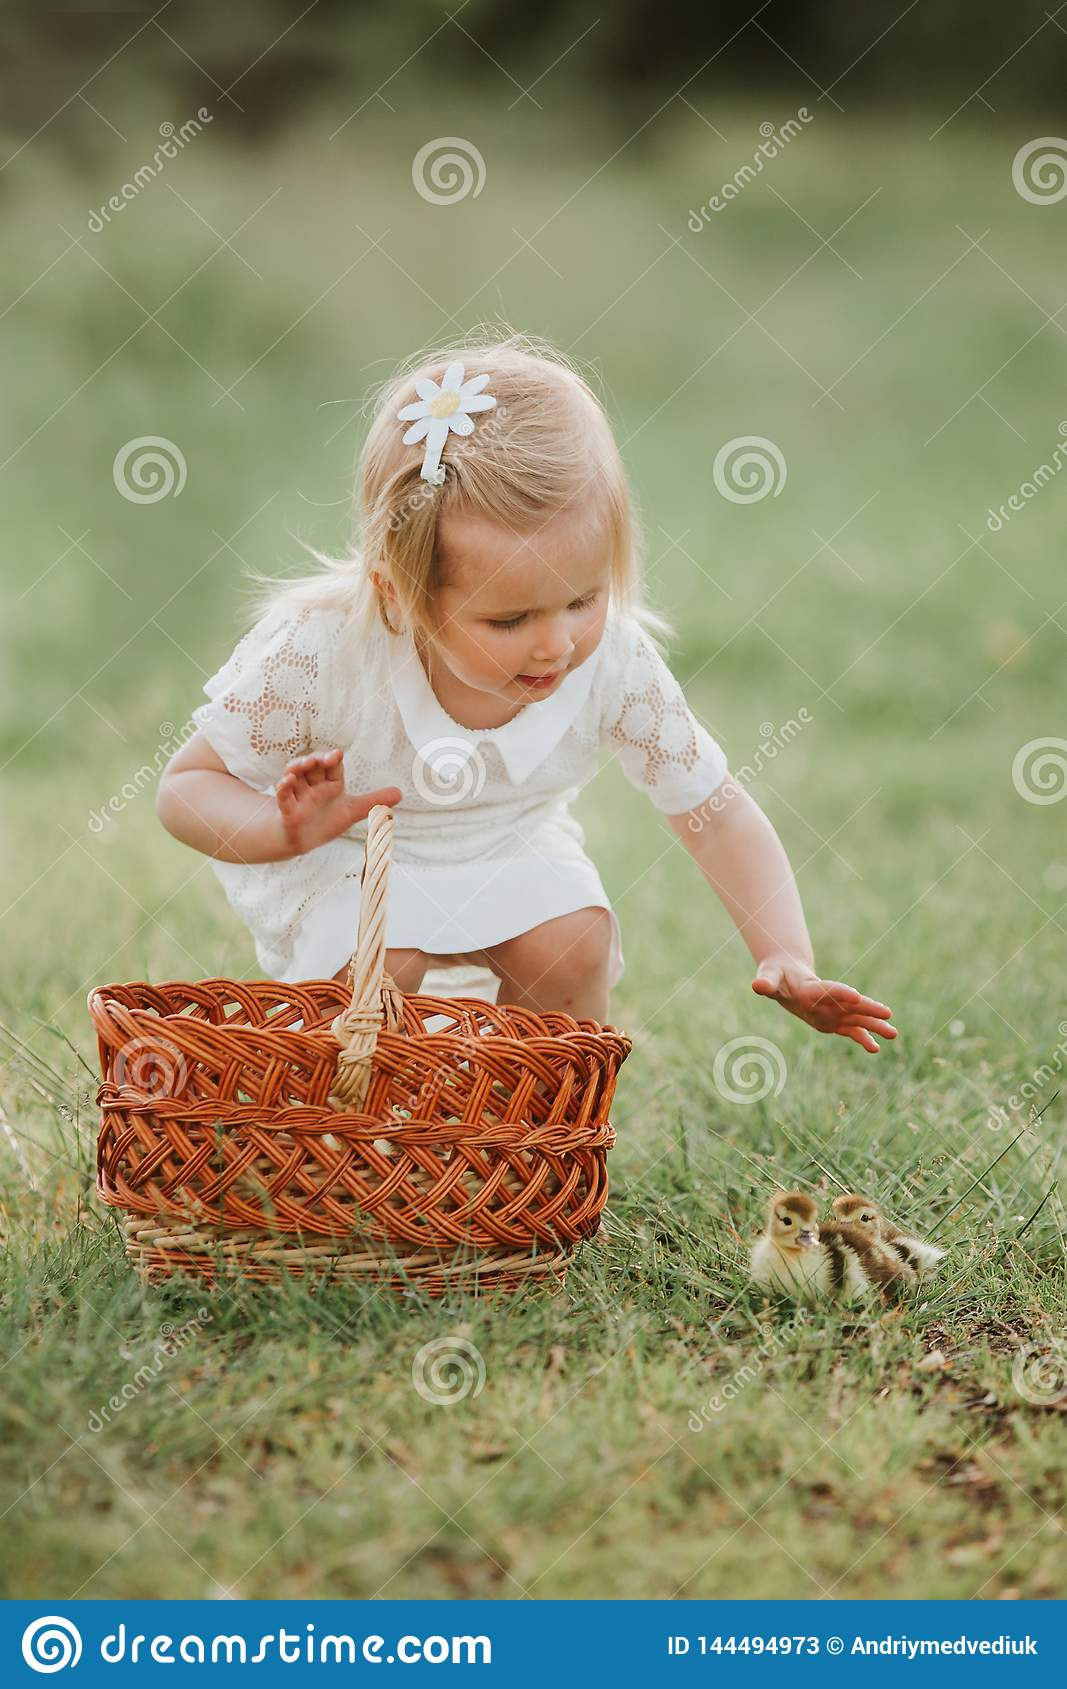 Little girl playing with ducklings. girls at sunset with lovely ducklings. The concept of children with animals